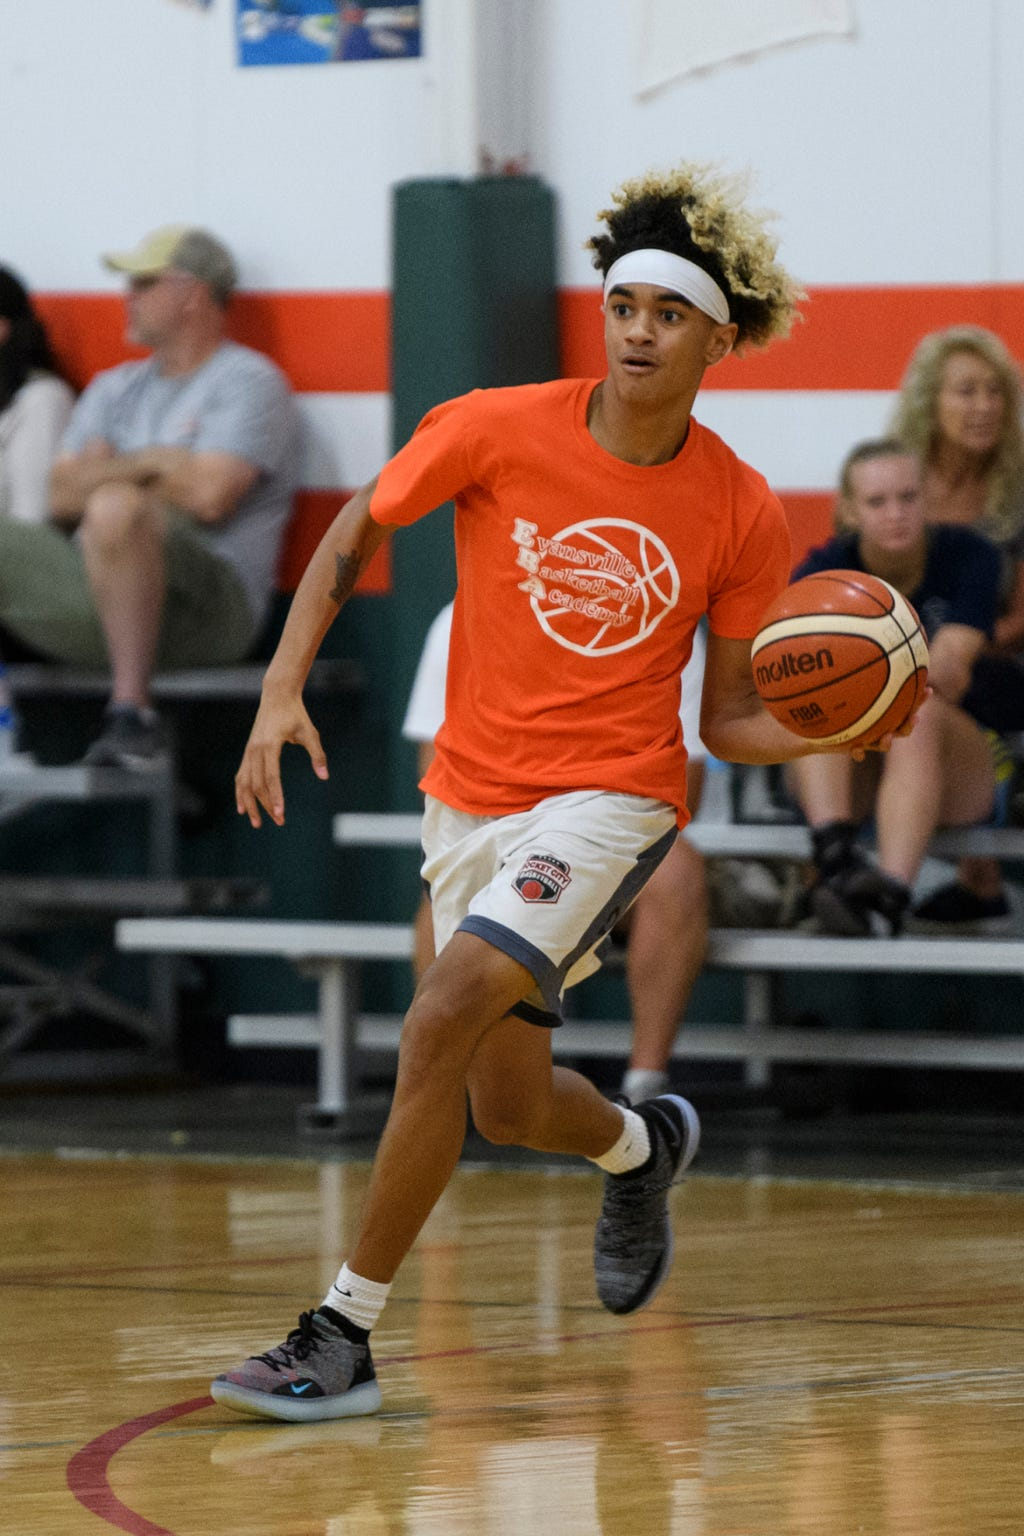 Reitz sophomore Khristian Lander plays in a 4-on-4 basketball game with his team, Young Guns, at the Evansville Basketball Academy in Evansville, Ind., Wednesday, Sept. 12, 2018.